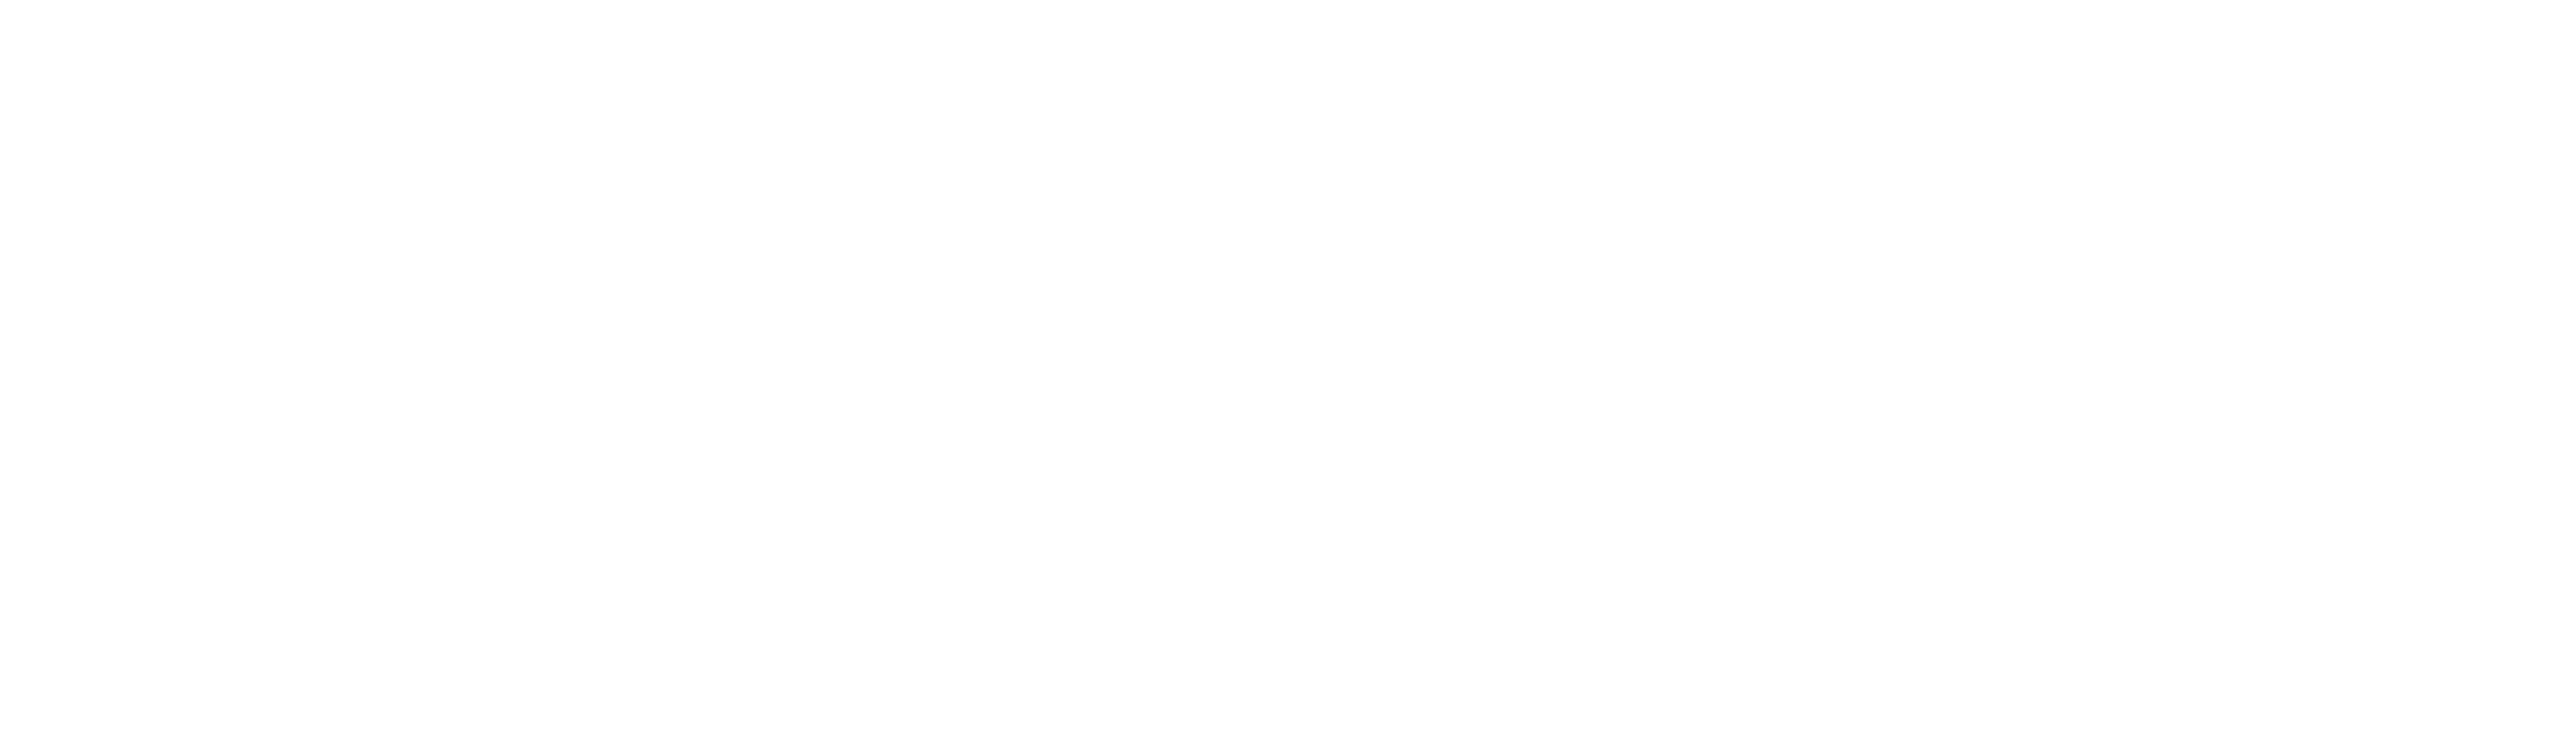 Your Western Garfield County Chamber of Commerce logo